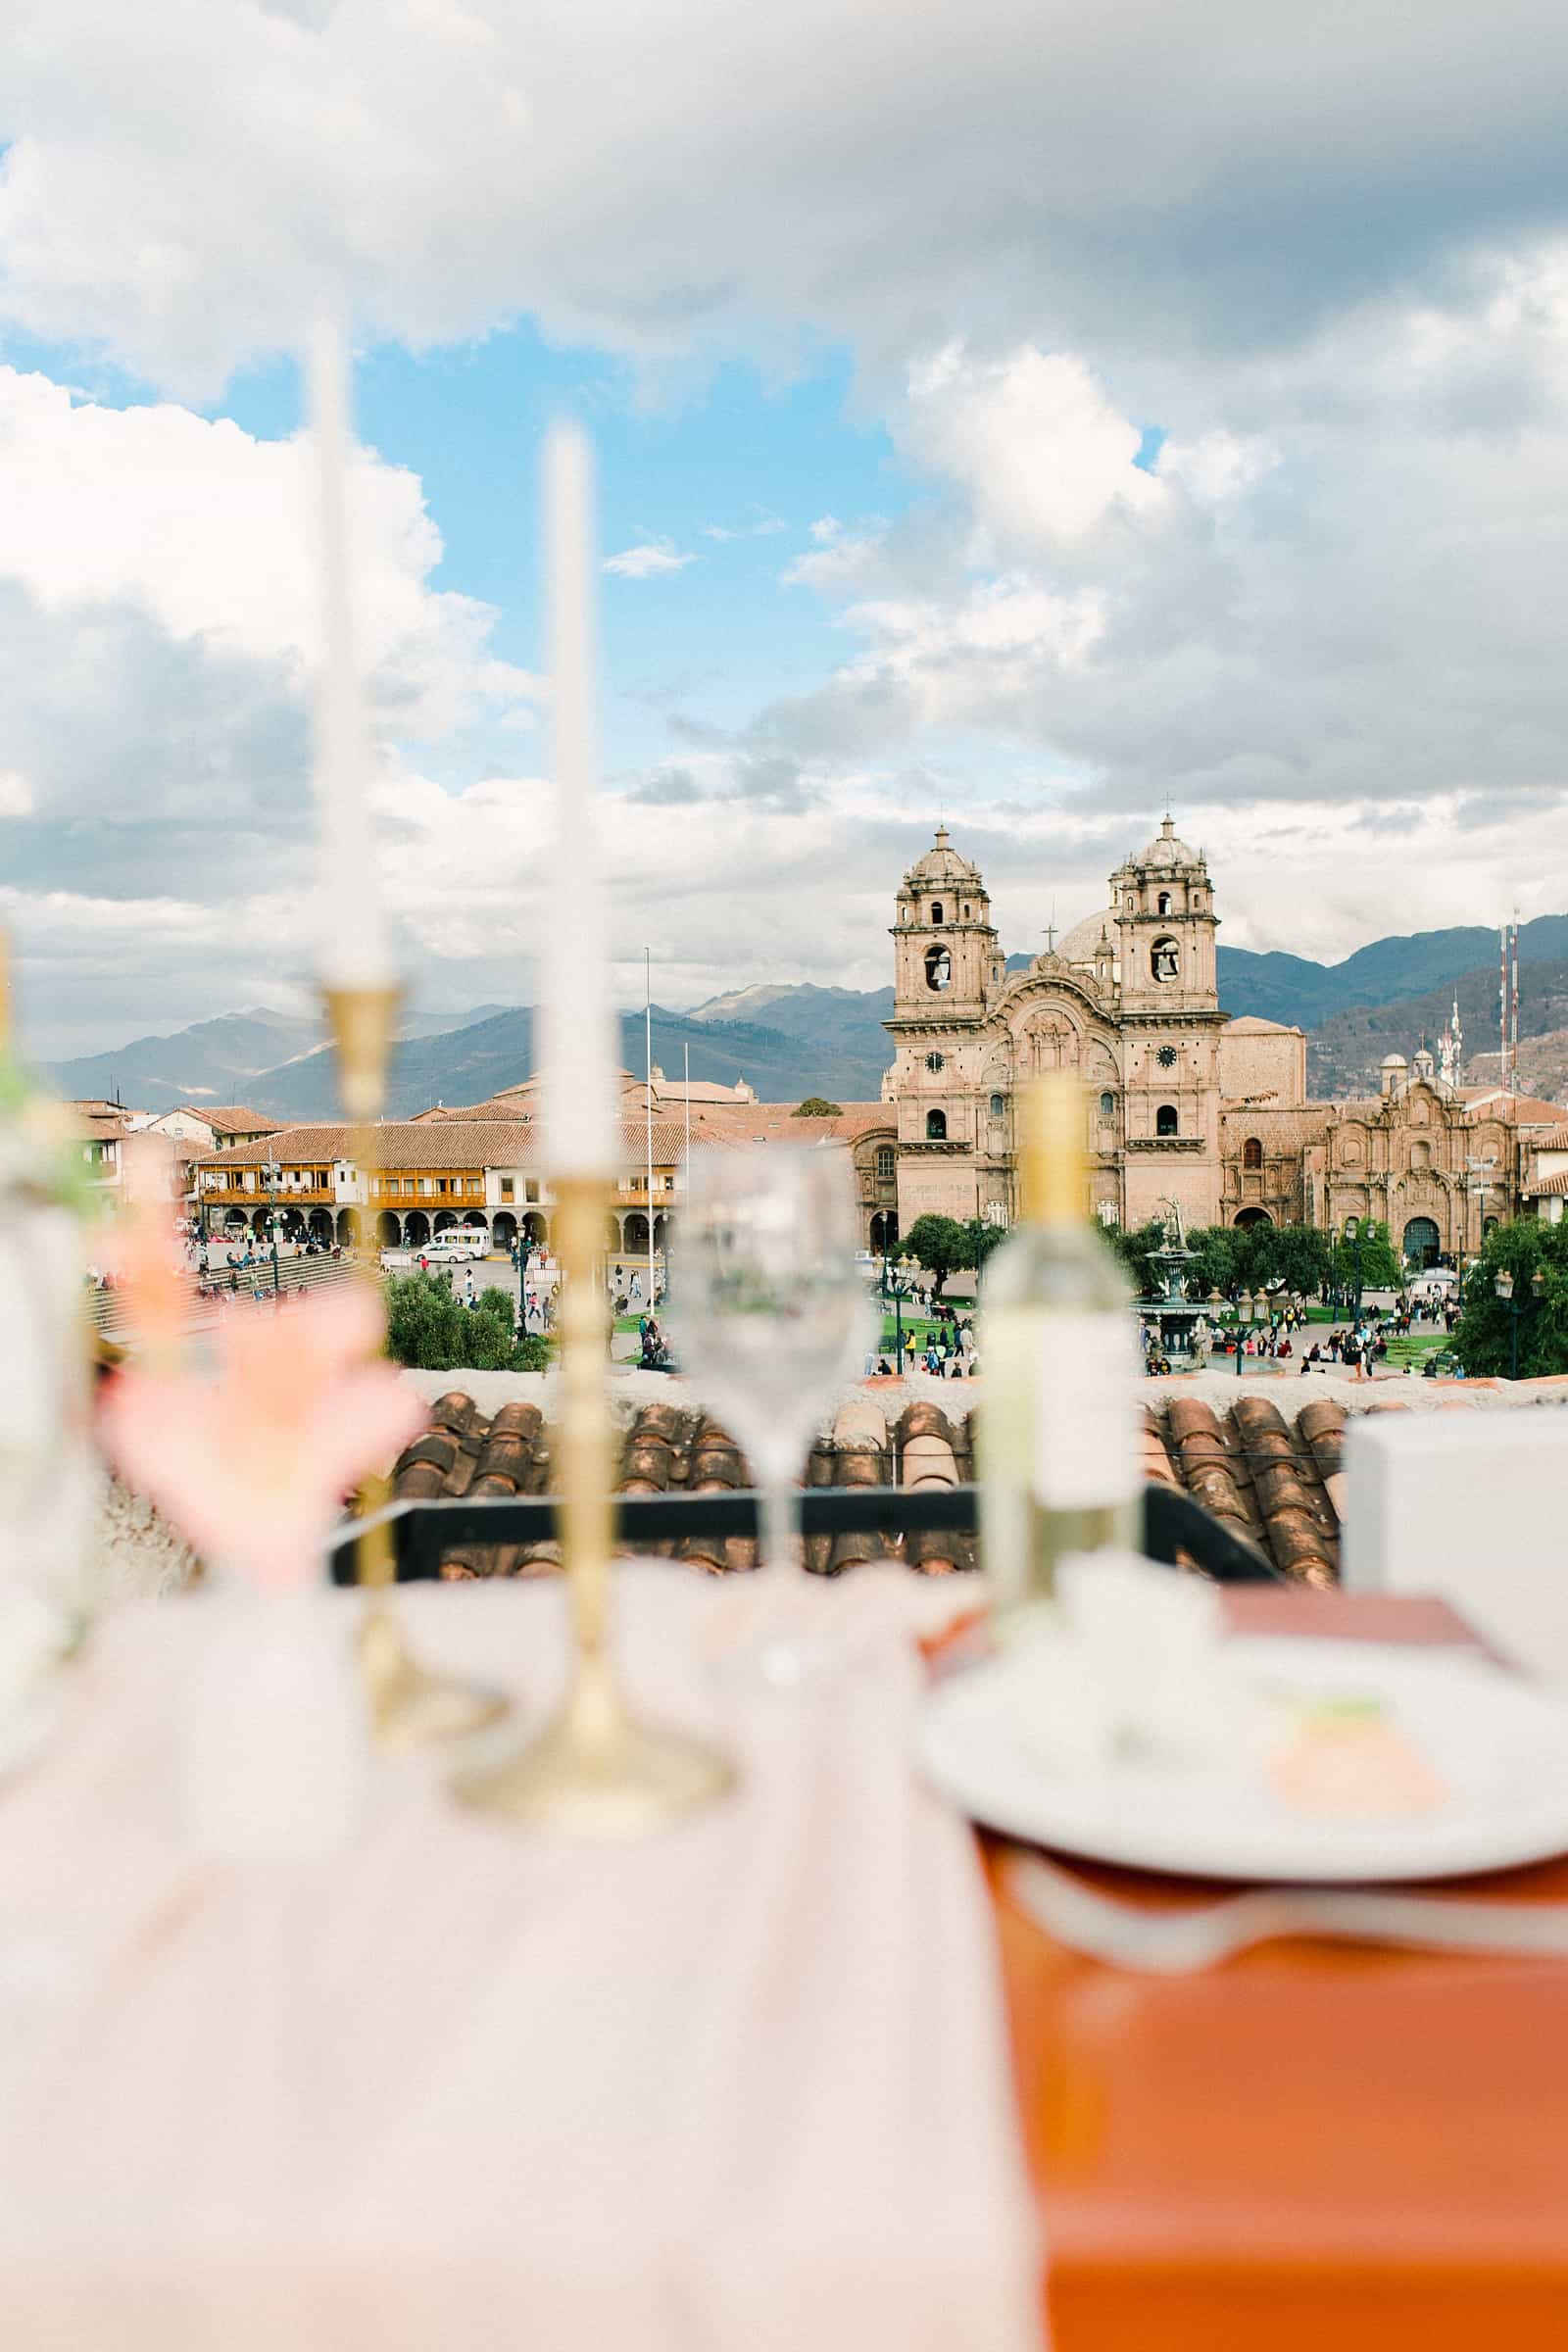 Cusco Peru Destination Wedding Inspiration, travel photography, wedding dinner overlooking Cusco Cathedral